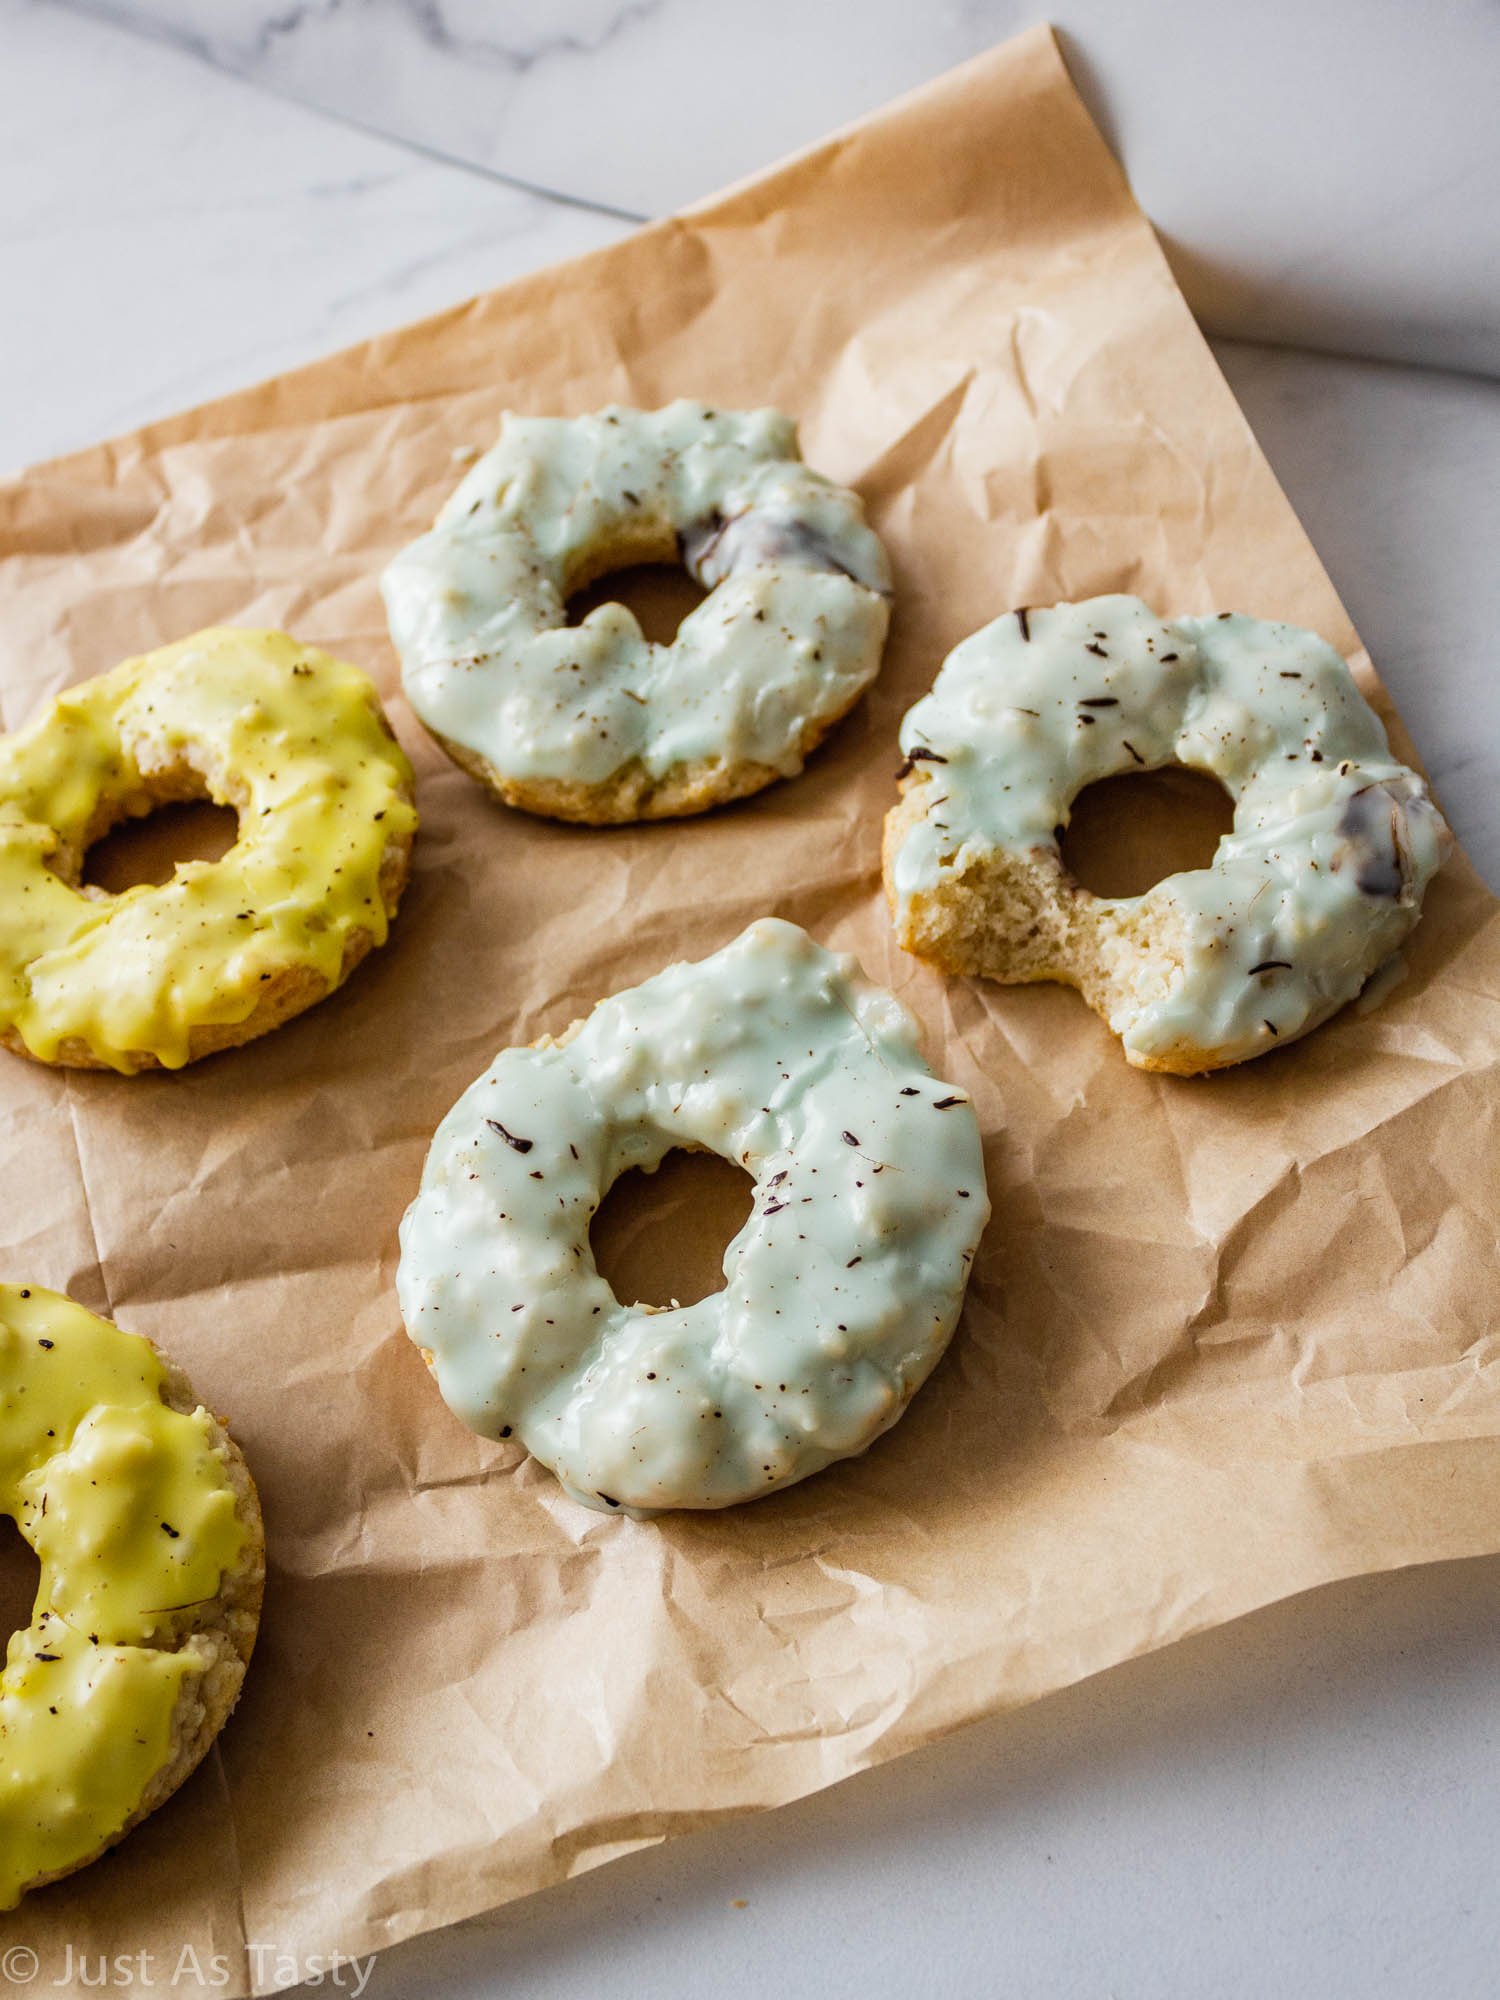 Baked banana donuts on parchment paper.